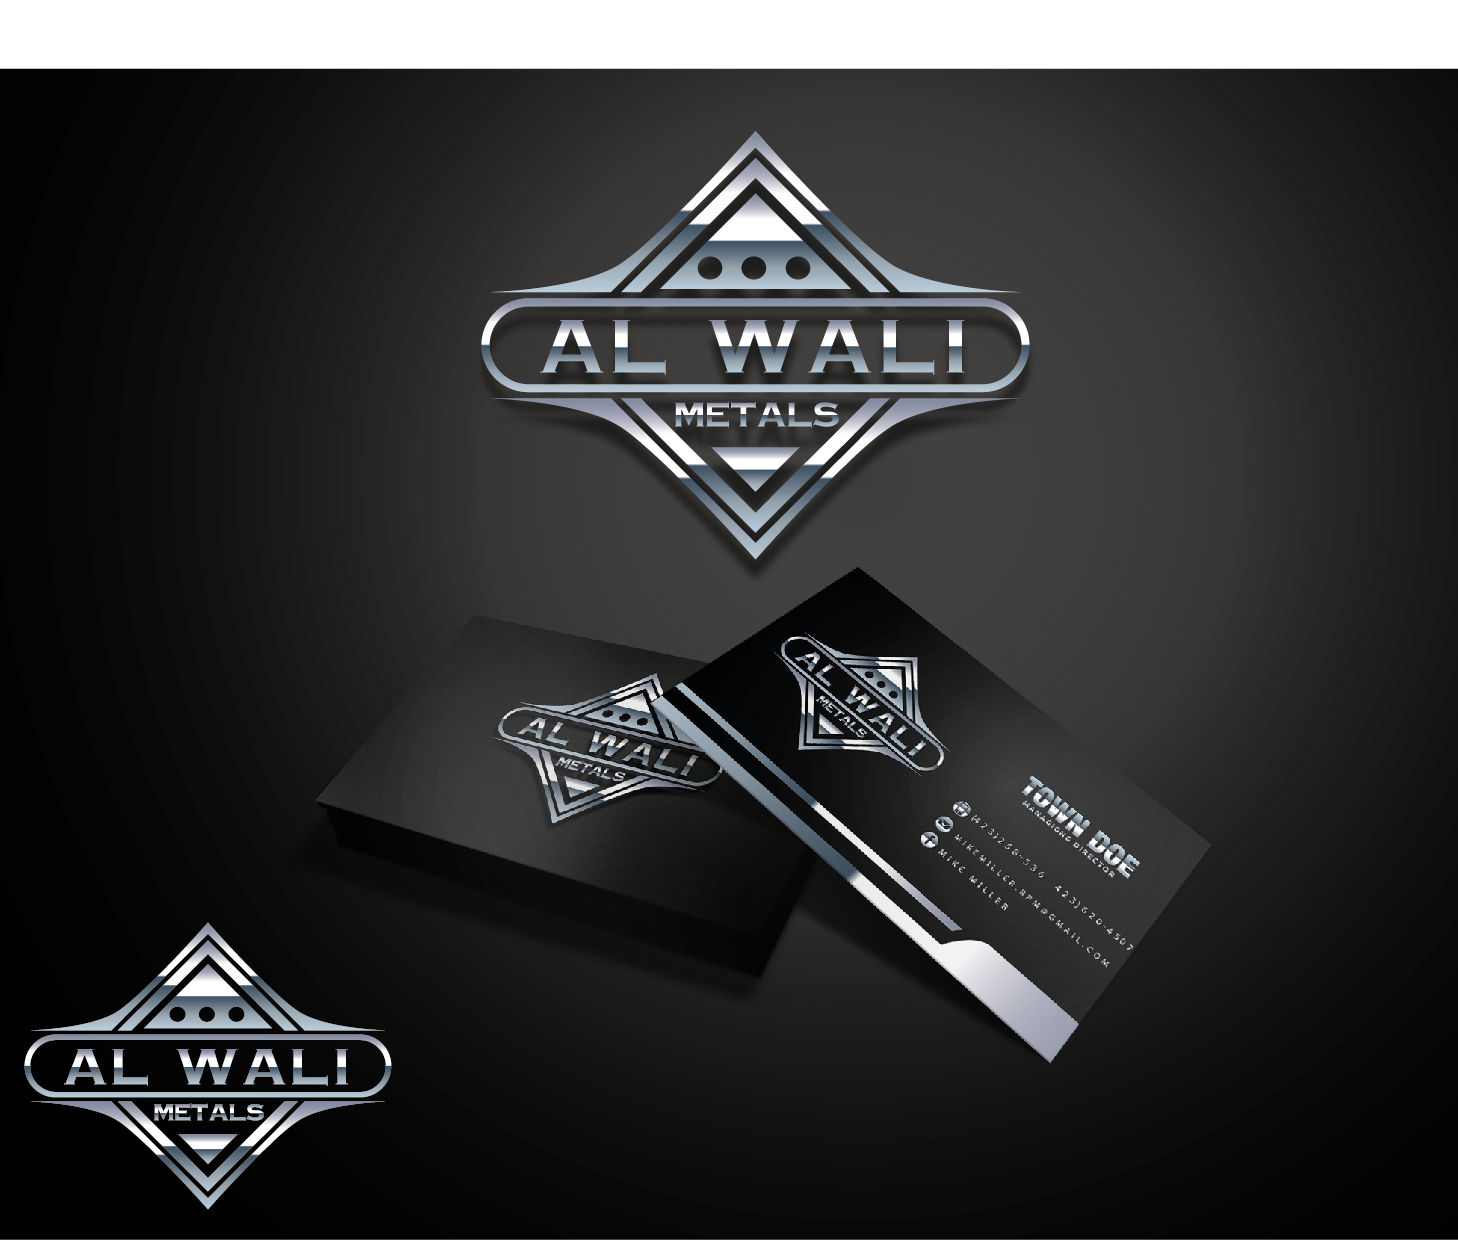 Logo Design by VENTSISLAV KOVACHEV - Entry No. 95 in the Logo Design Contest Inspiring Logo Design for Al Wali Metals.